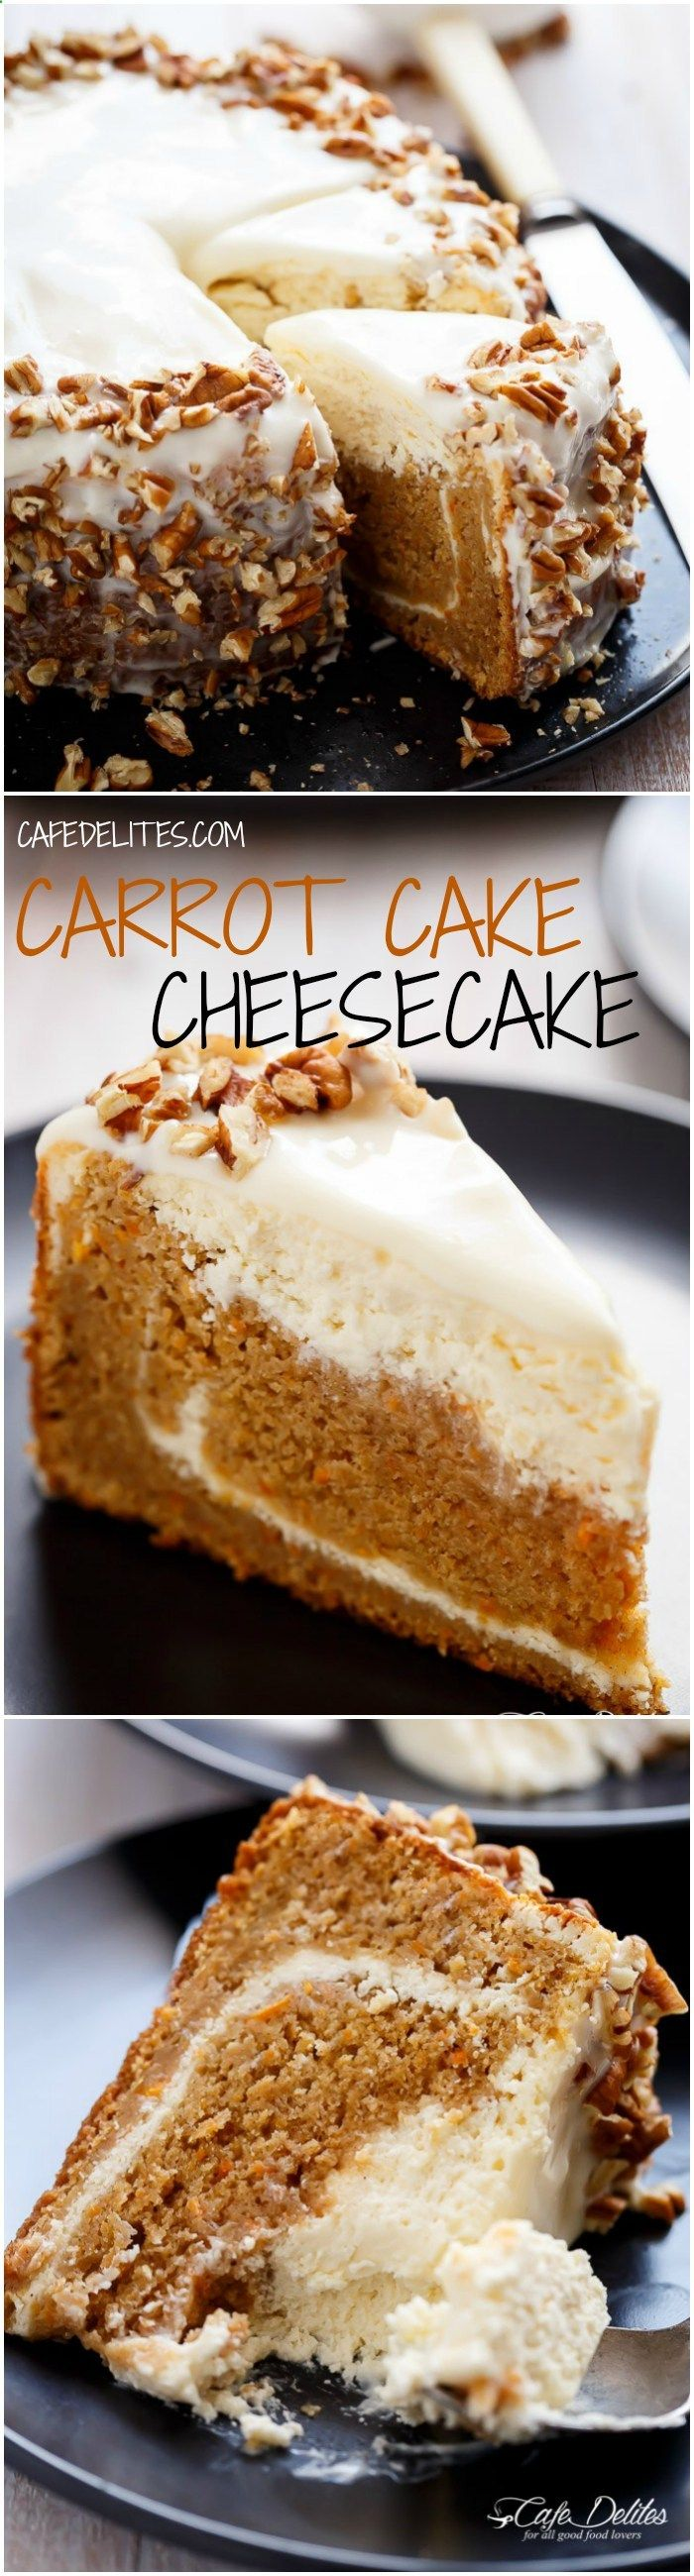 Carrot Cake Cheesecake ● A fluffy and super moist, lower in fat, lighter in calories carrot cake layered with a creamy, lemon scented cheesecake. The BEST of both worlds! | cafedelites.com